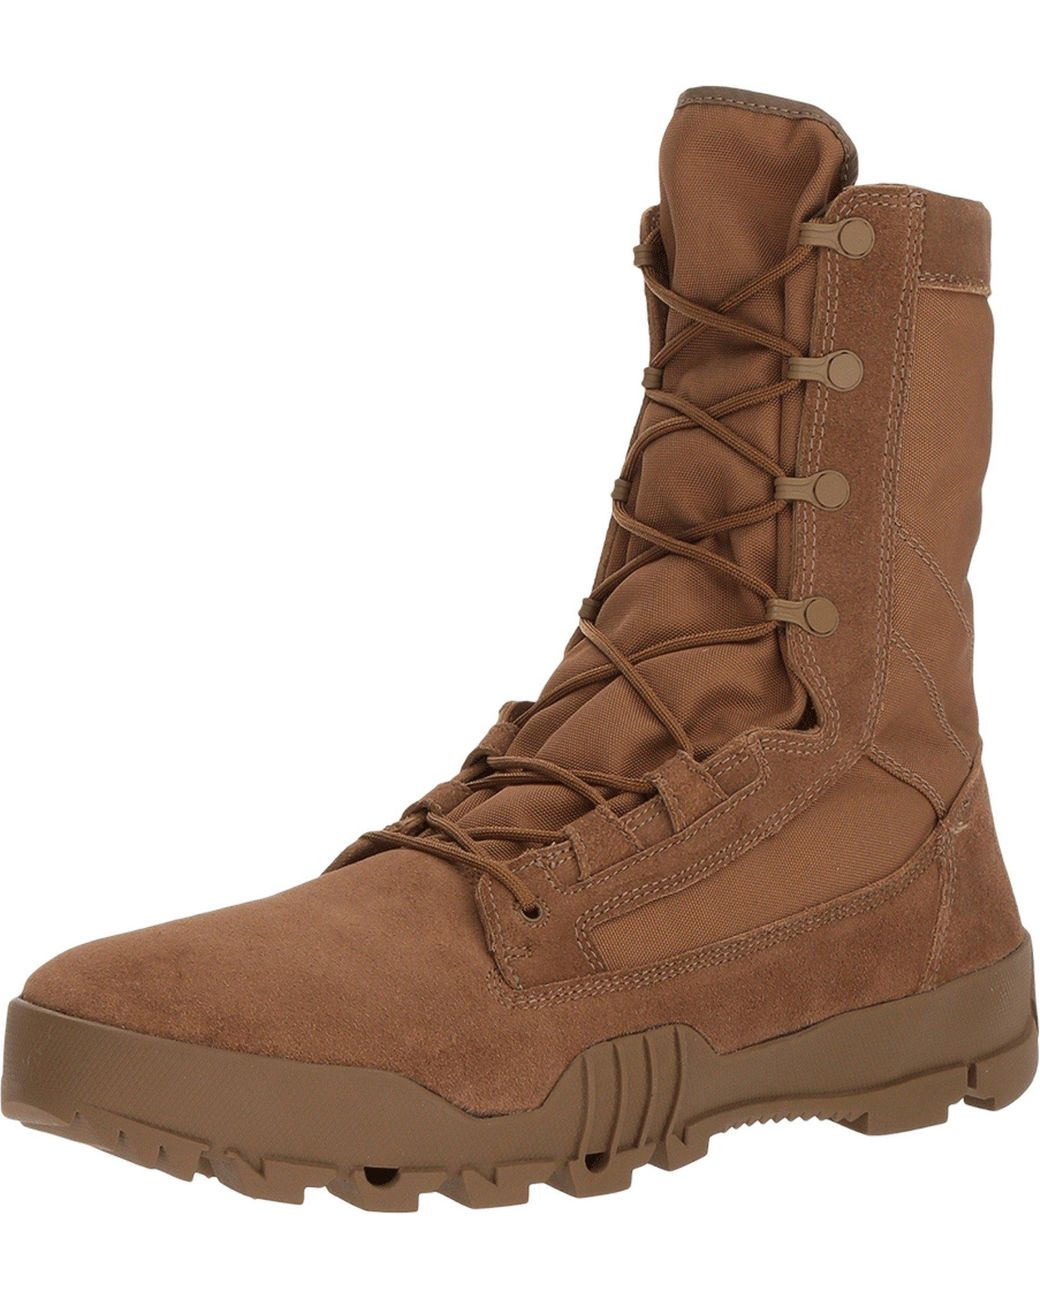 Nike Sfb Jungle 8 Leather Boot in Brown